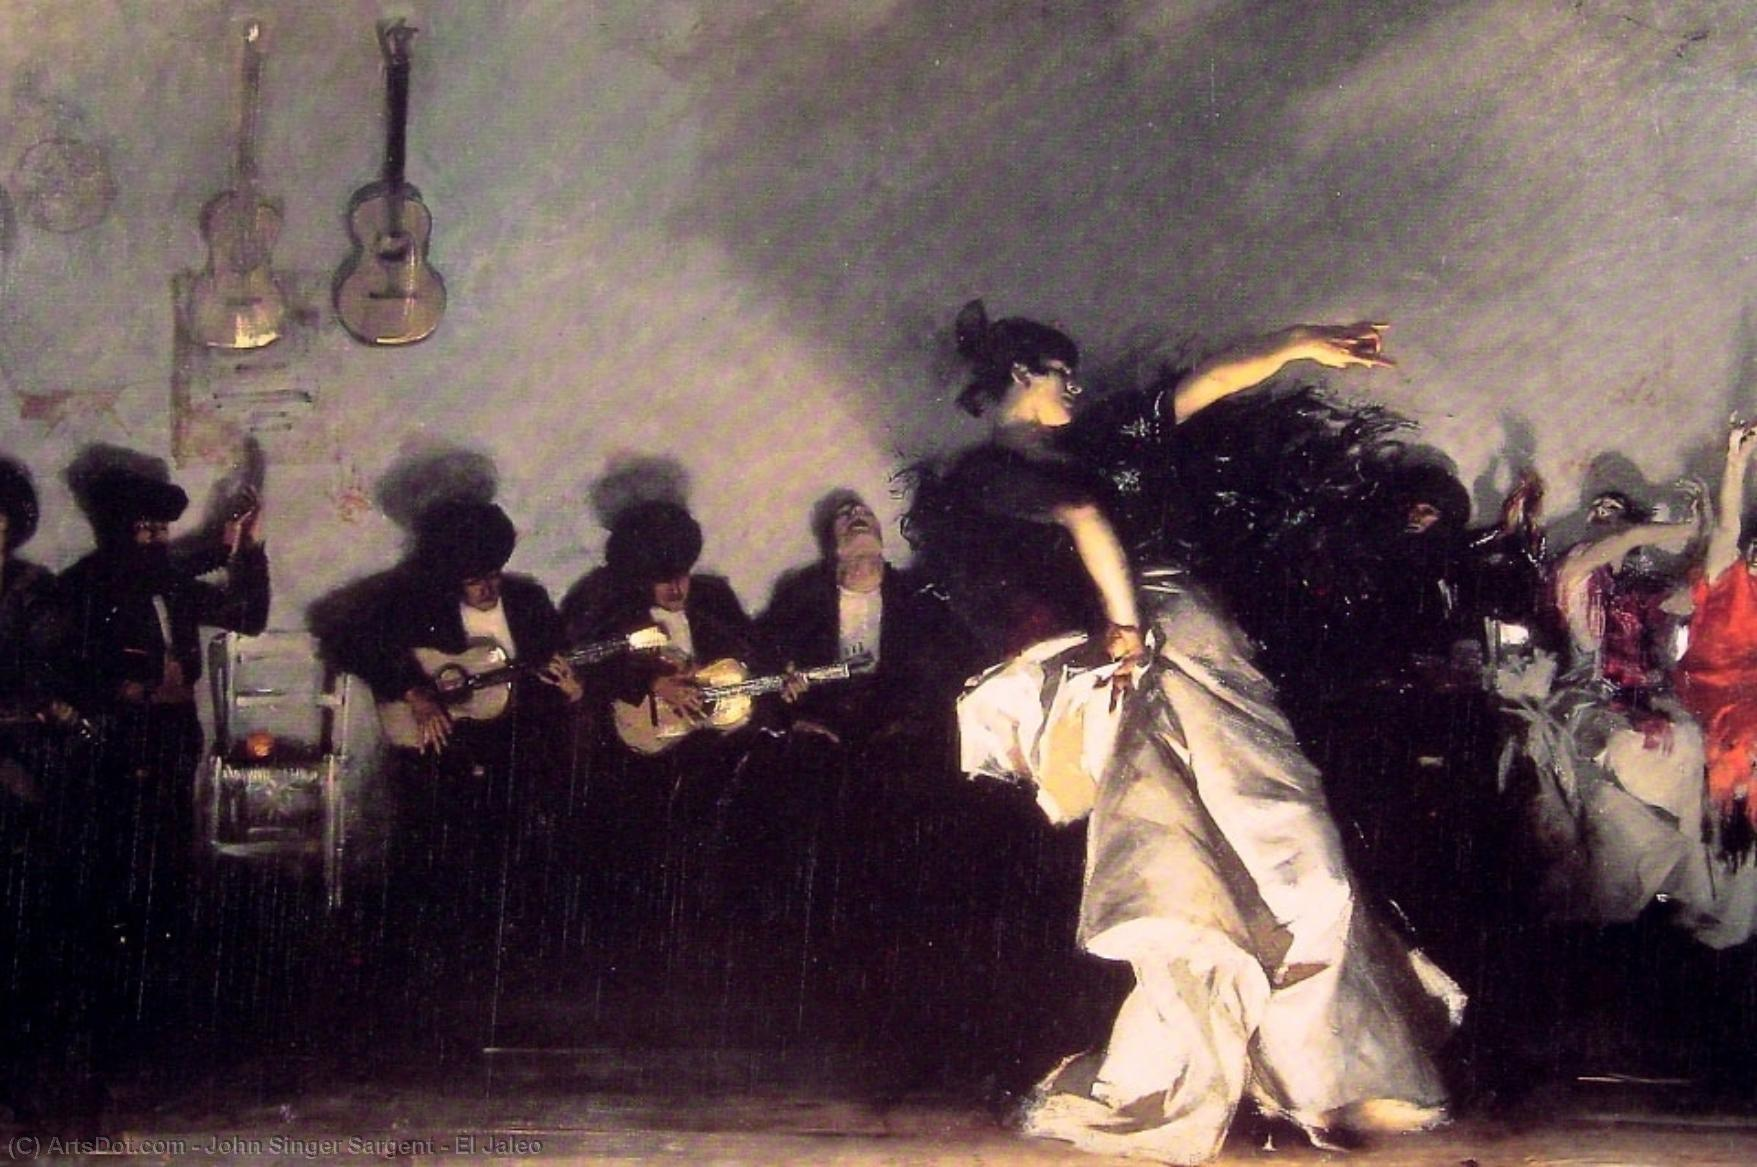 Wikioo.org - The Encyclopedia of Fine Arts - Painting, Artwork by John Singer Sargent - El Jaleo